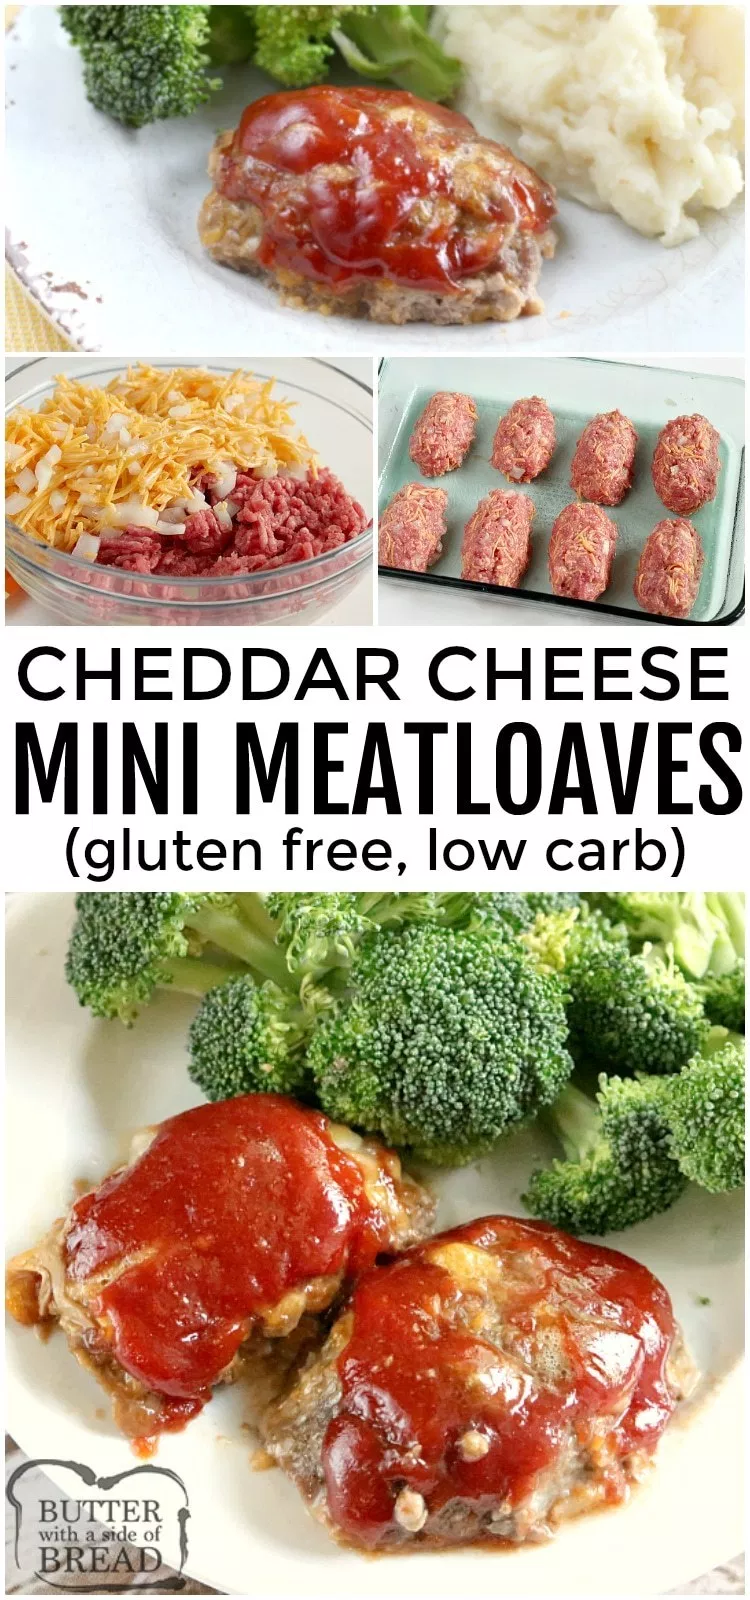 MINI MEATLOAF RECIPE with CHEDDAR CHEESE - Butter with a Side of Bread